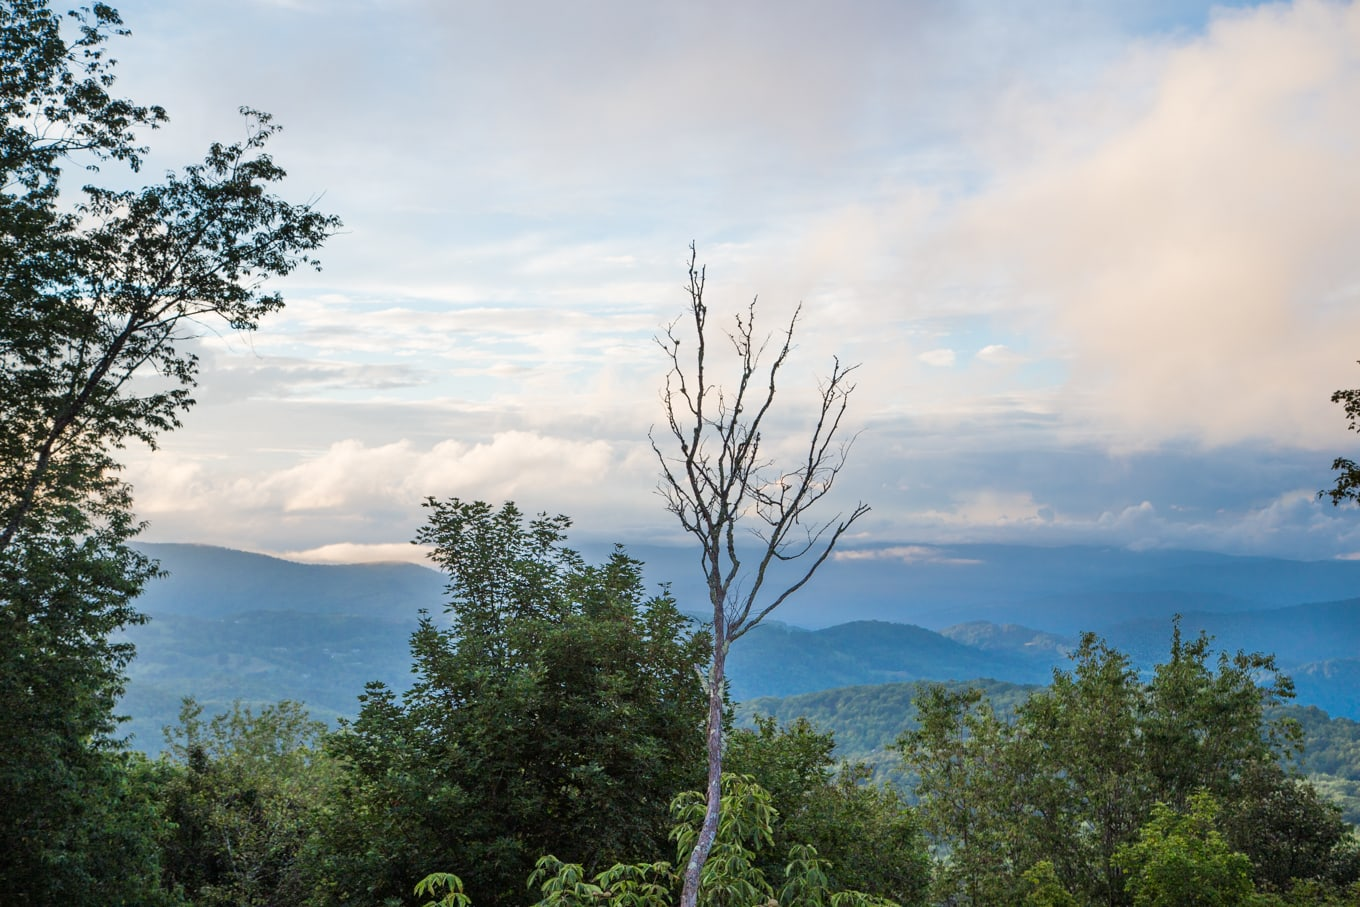 Panoramic shot of the North Carolina mountains with rain clouds in the distance.